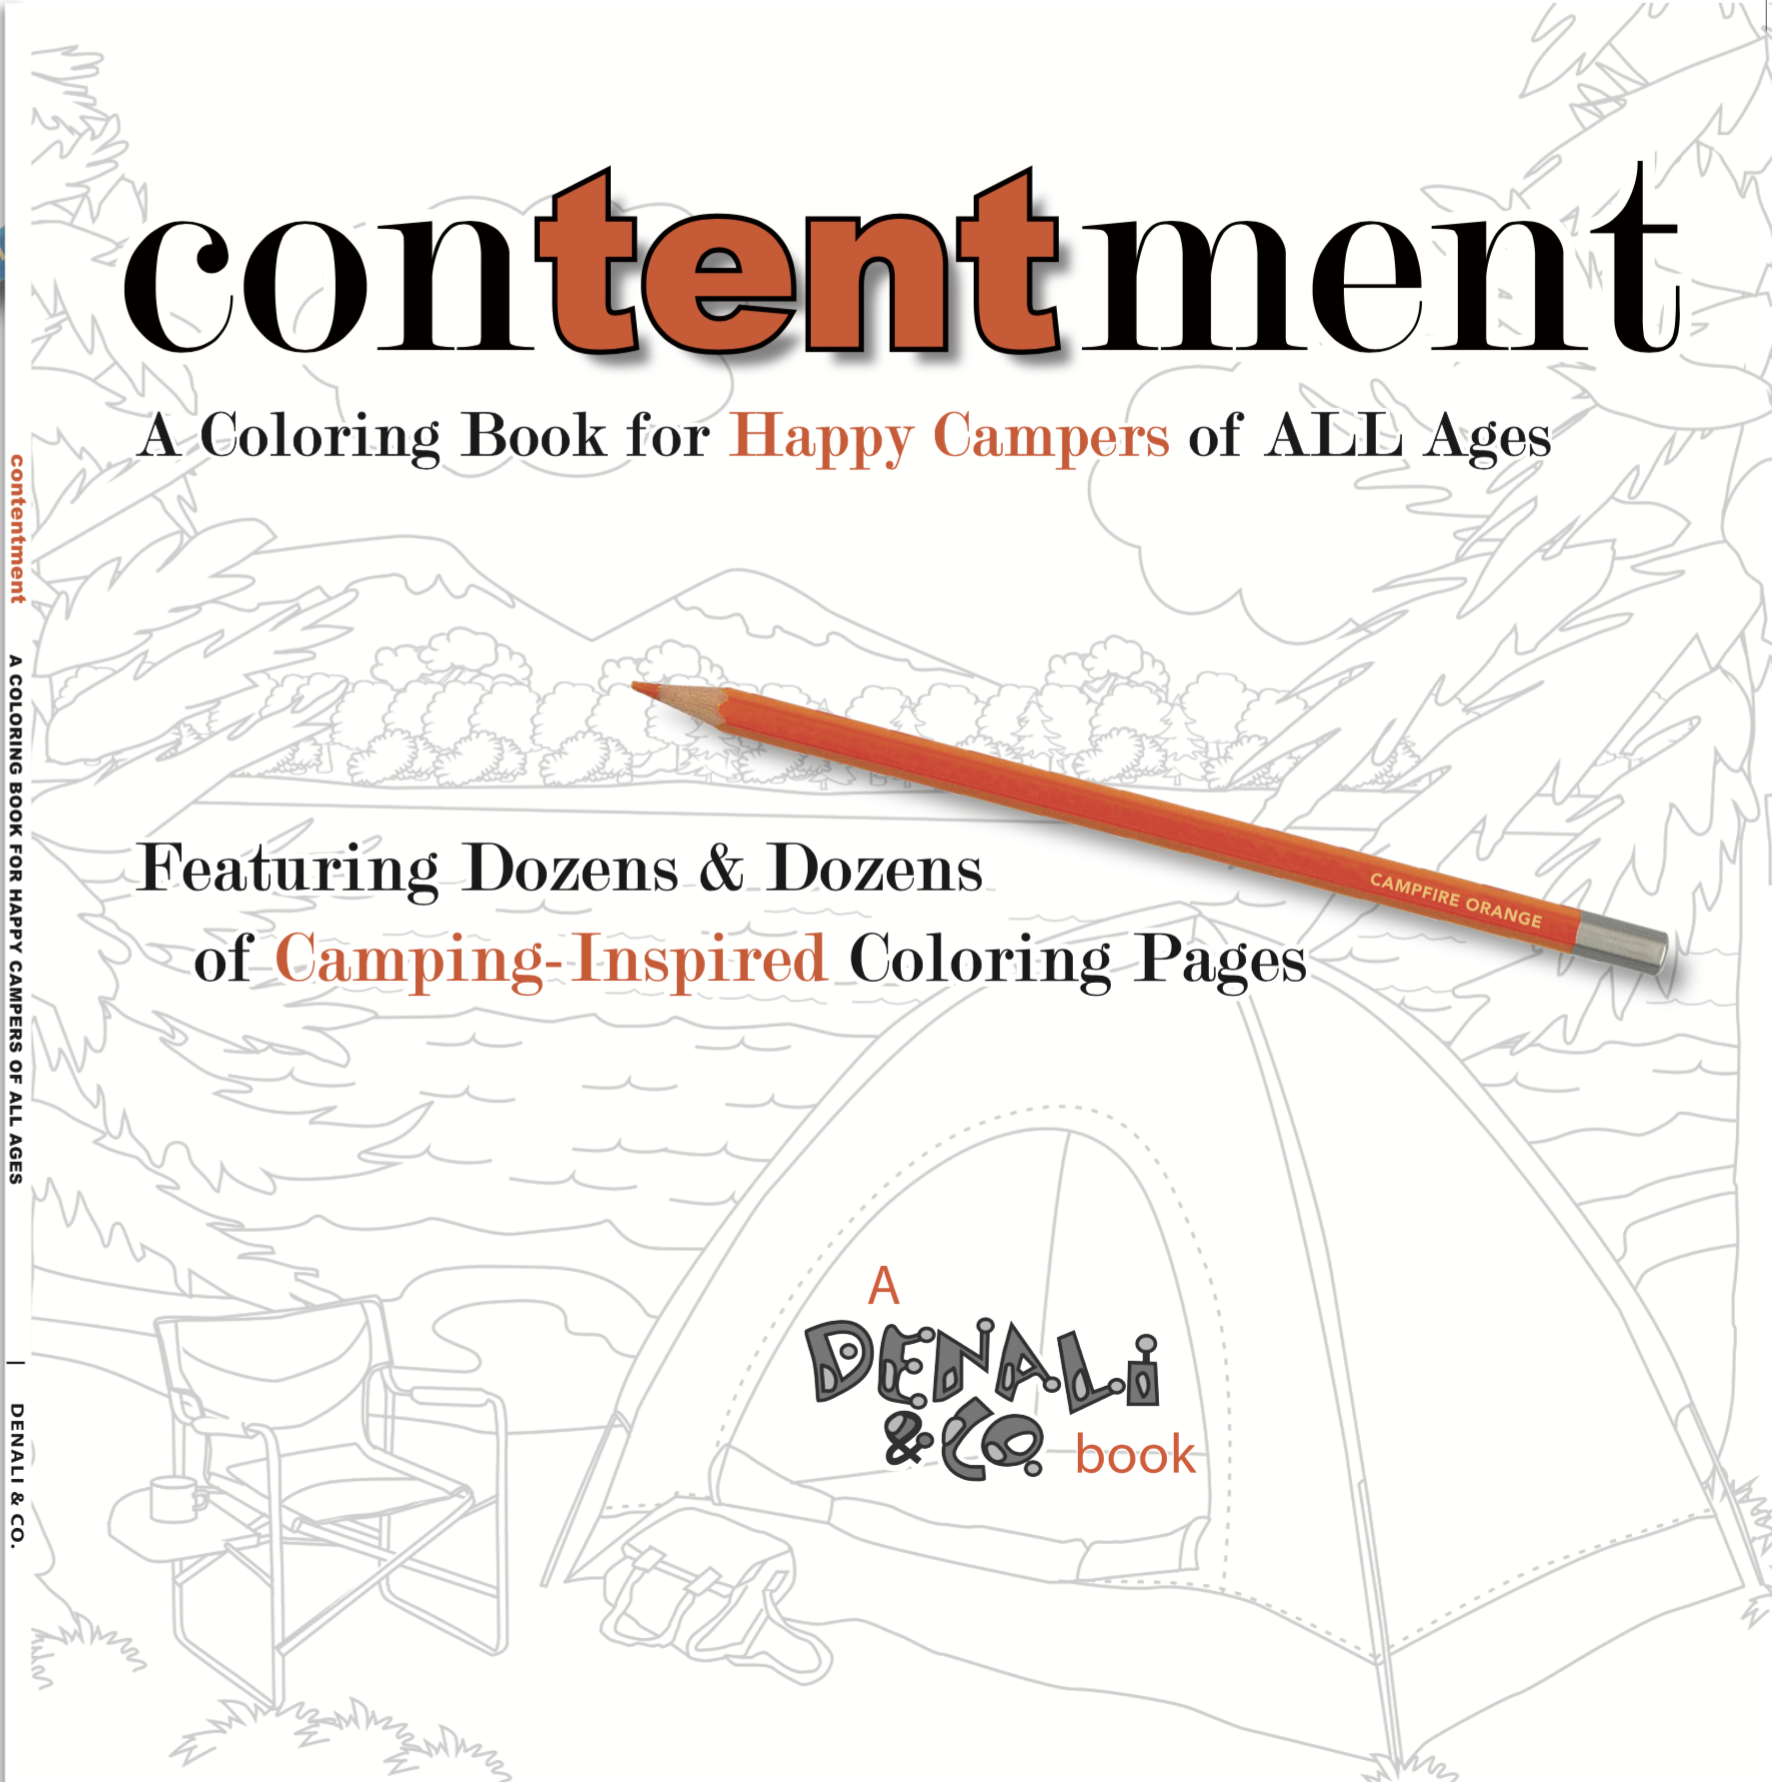 Contentment: The Coloring Book for Happy Campers of ALL Ages